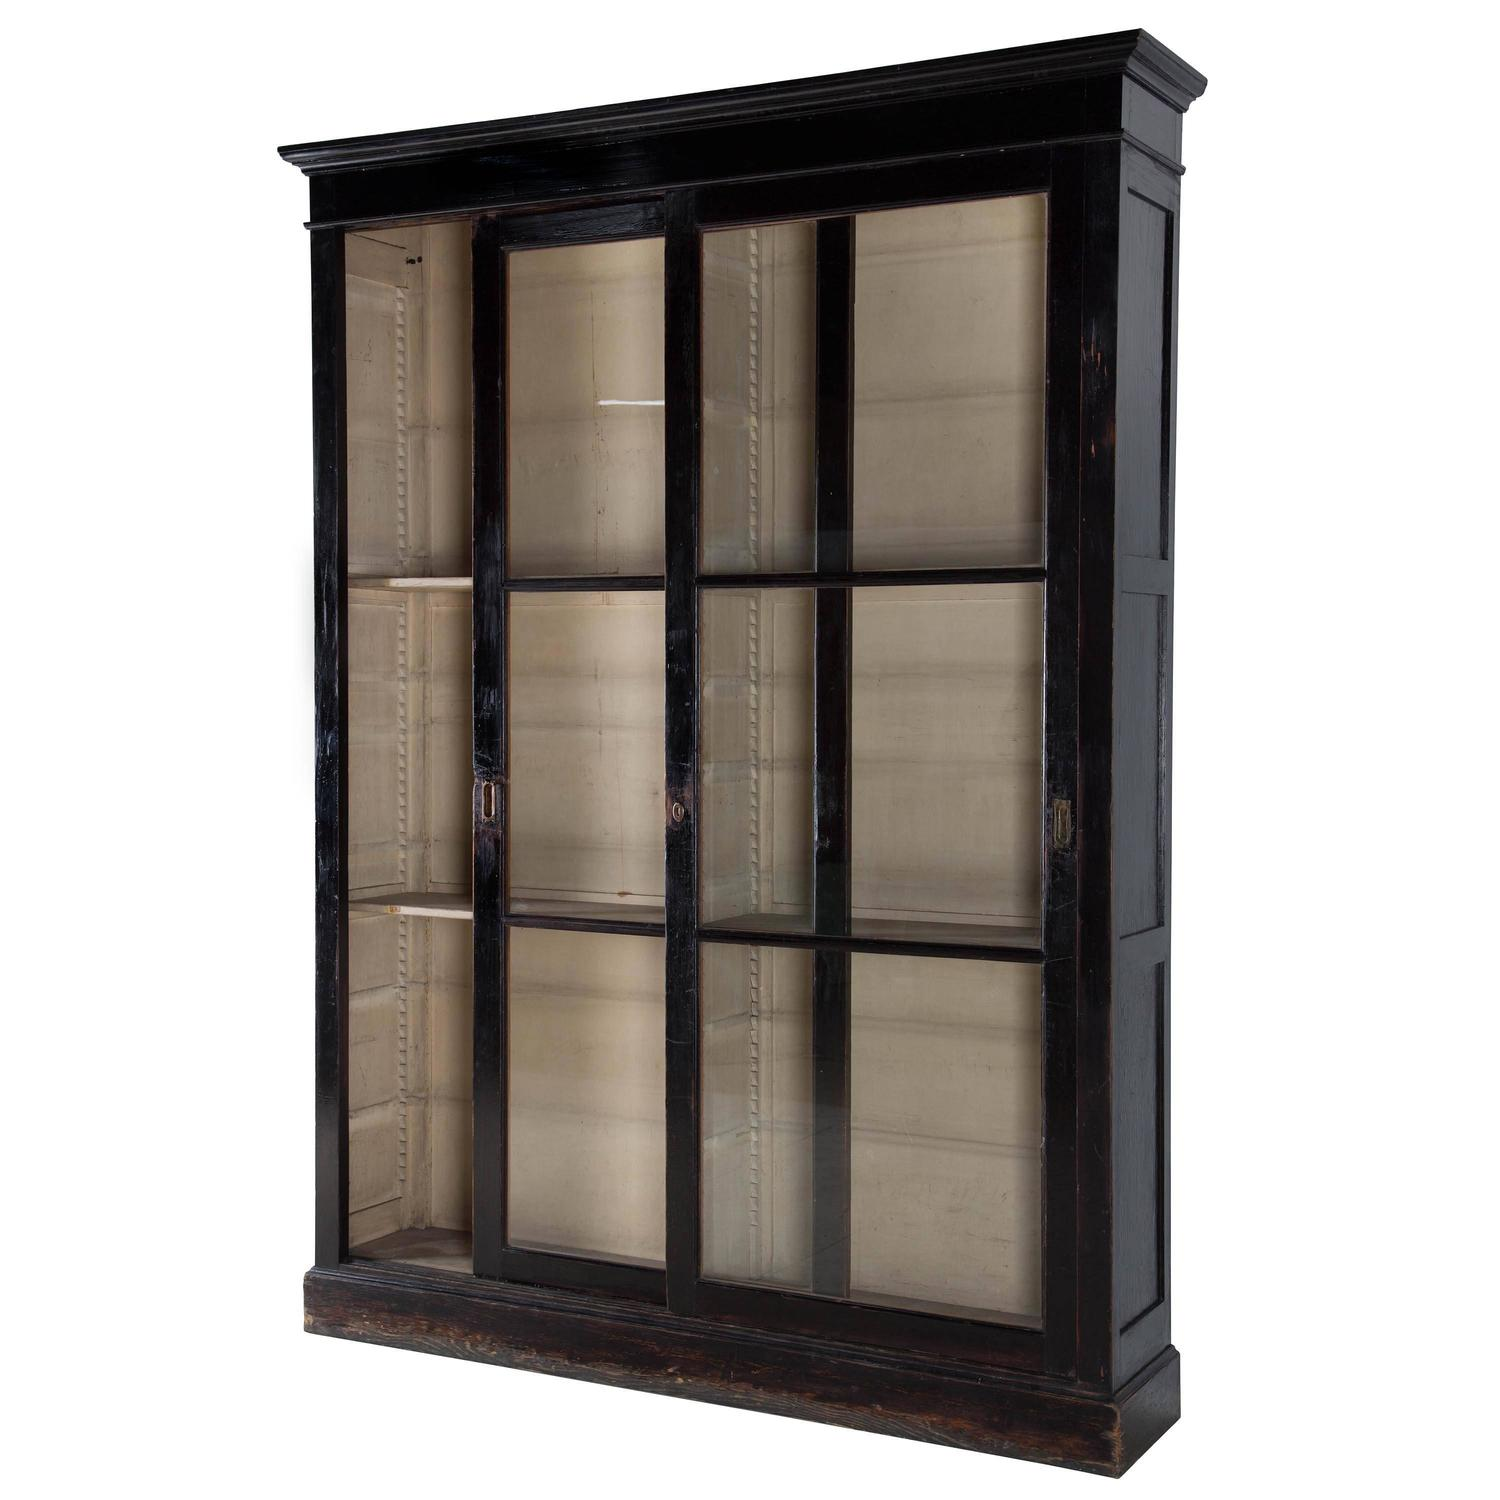 19th century ebonized cabinet at 1stdibs for 19th century kitchen cabinets